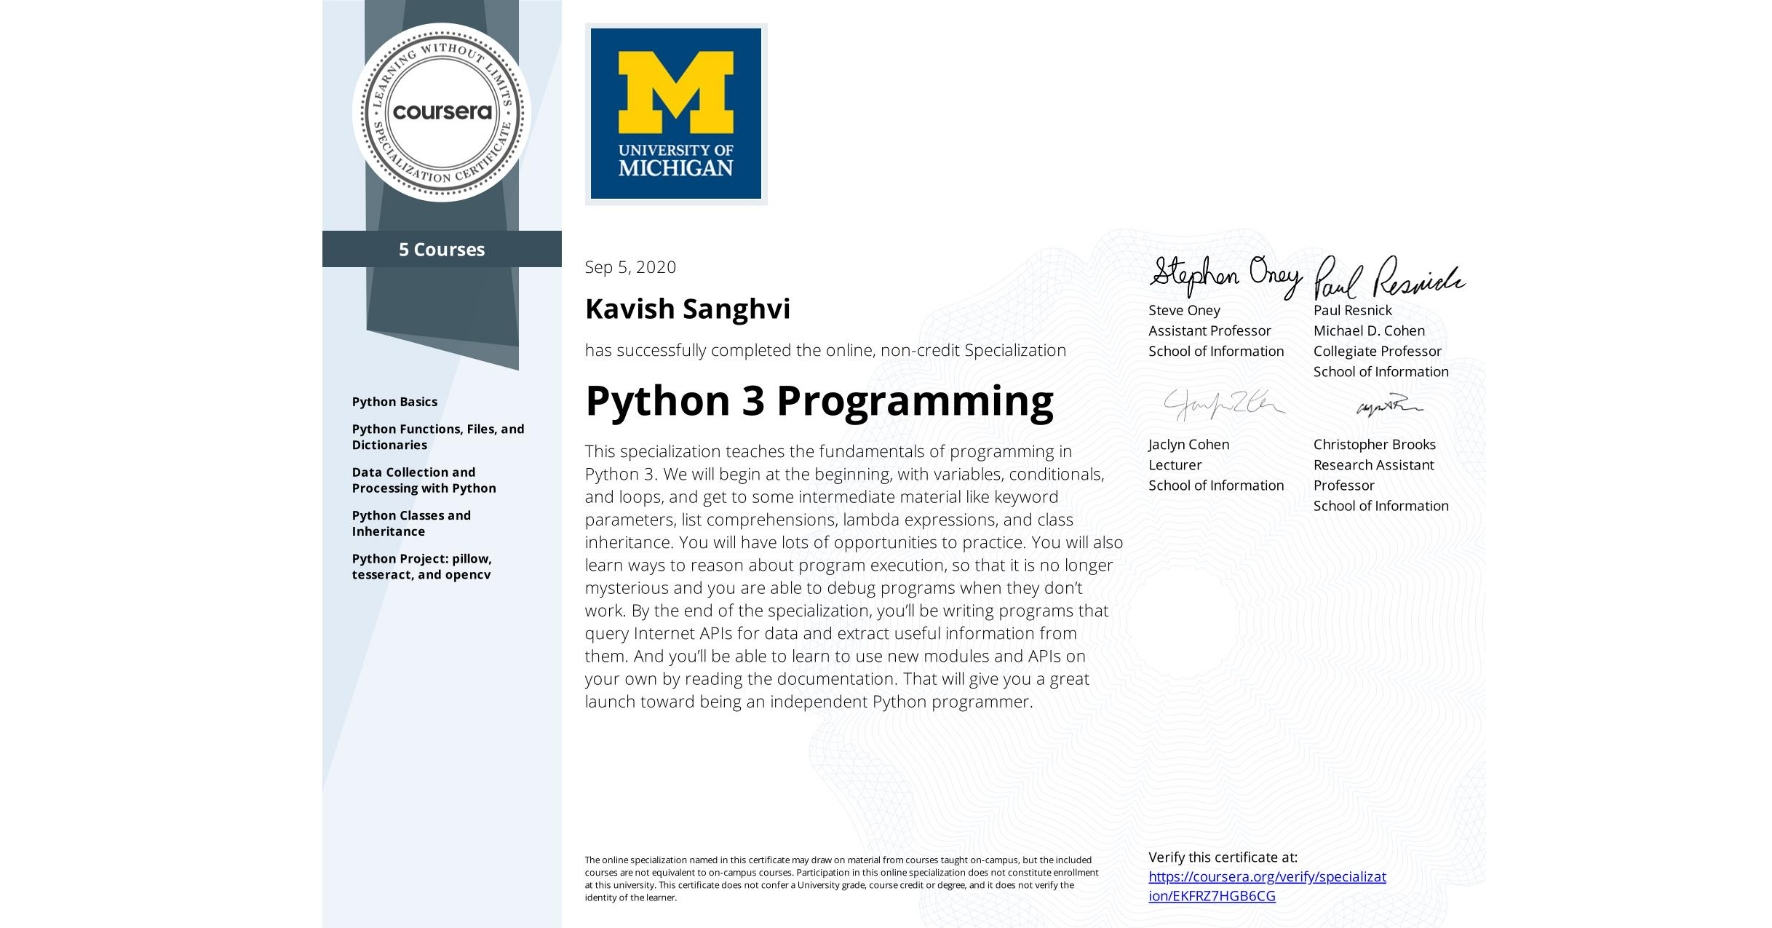 View certificate for Kavish Sanghvi, Python 3 Programming, offered through Coursera. This specialization teaches the fundamentals of programming in Python 3. We will begin at the beginning, with variables, conditionals, and loops, and get to some intermediate material like keyword parameters, list comprehensions, lambda expressions, and class inheritance.  You will have lots of opportunities to practice. You will also learn ways to reason about program execution, so that it is no longer mysterious and you are able to debug programs when they don't work.  By the end of the specialization, you'll be writing programs that query Internet APIs for data and extract useful information from them. And you'll be able to learn to use new modules and APIs on your own by reading the documentation. That will give you a great launch toward being an independent Python programmer.